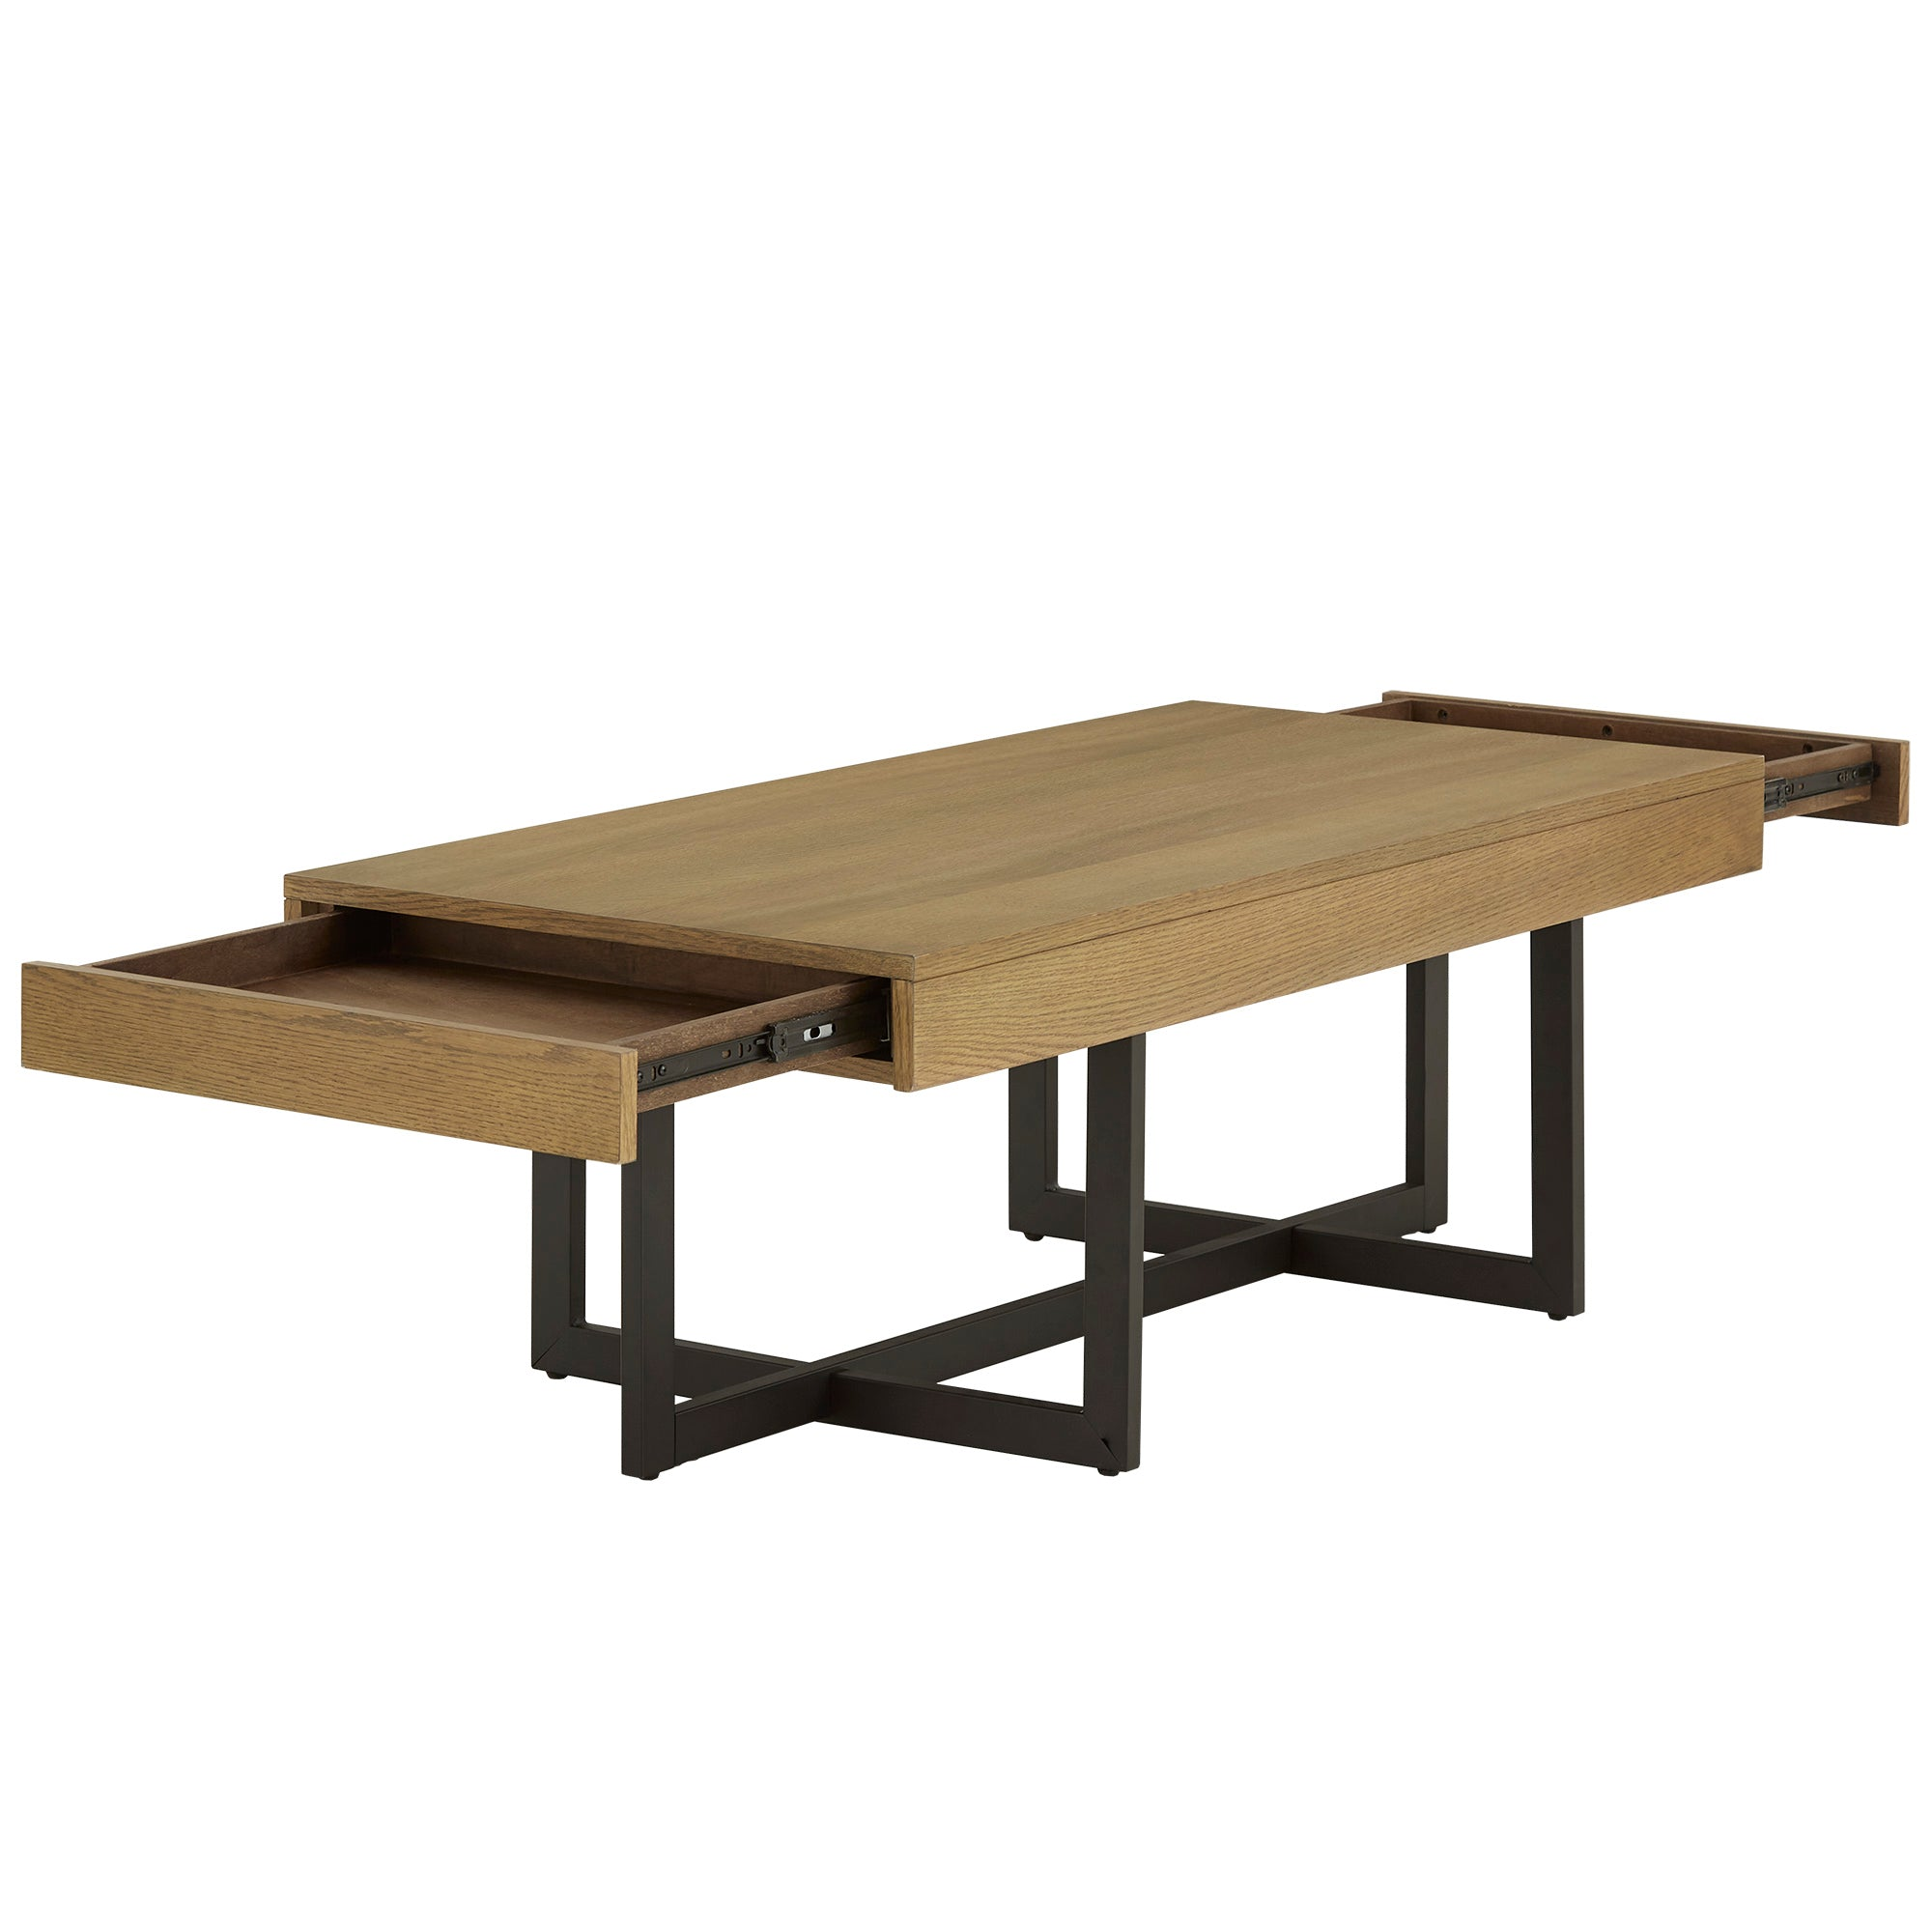 Wood Finish Table with Drawer(s) - Oak Finish